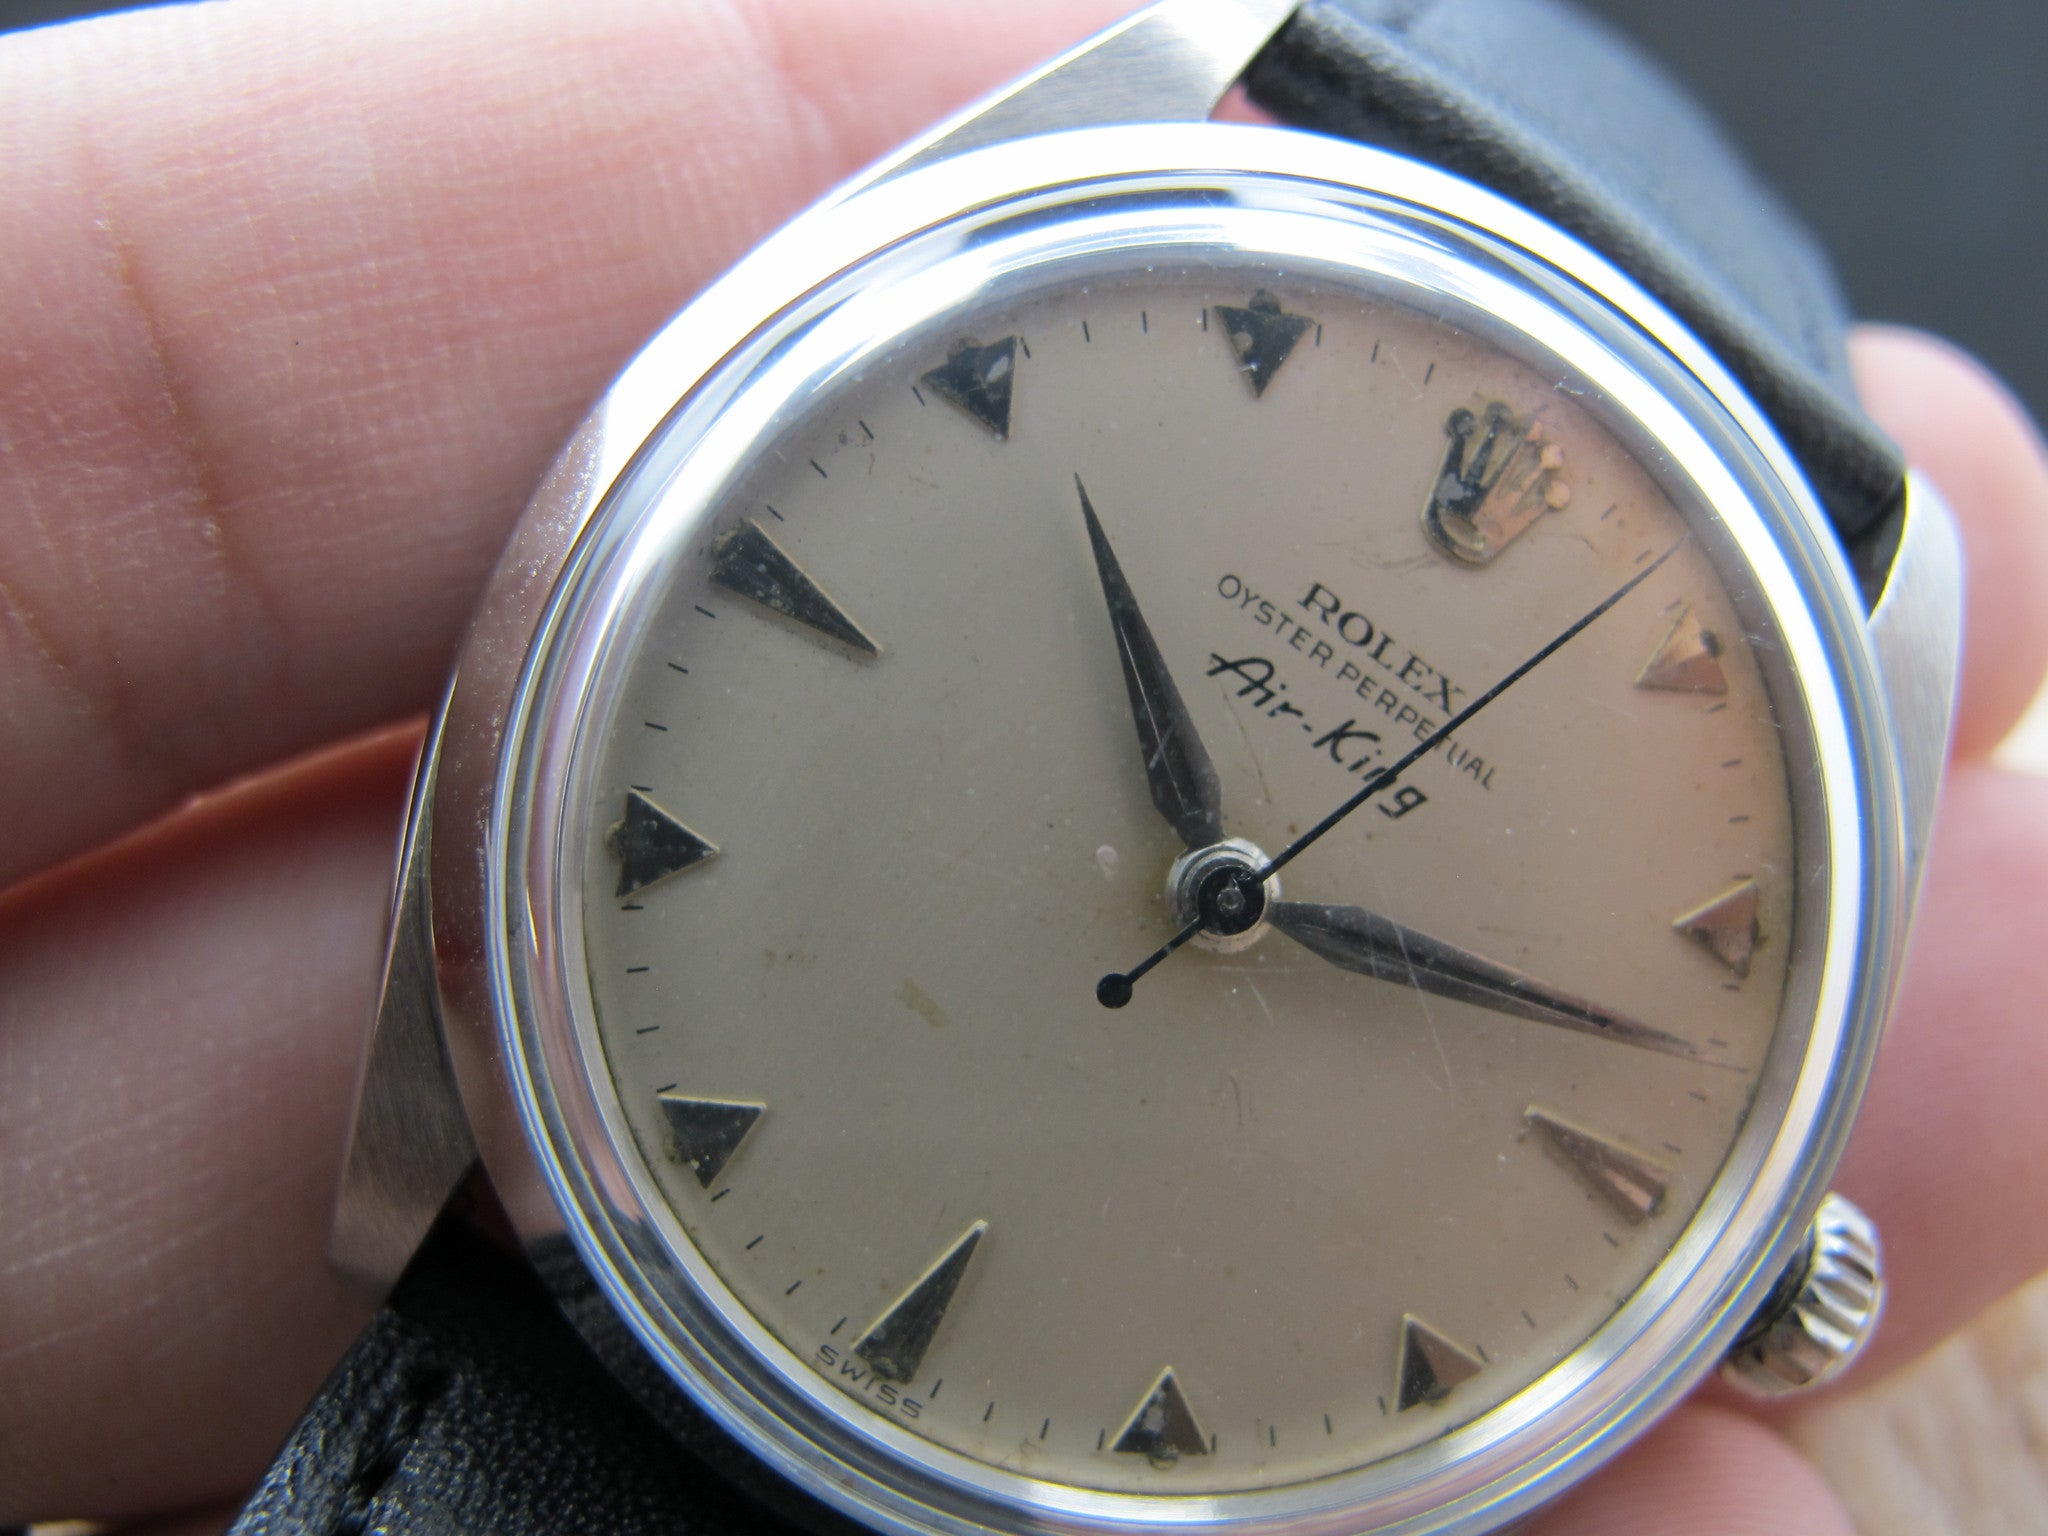 1958 Rolex Air King 5500 Original Creamy Fly Index Dial